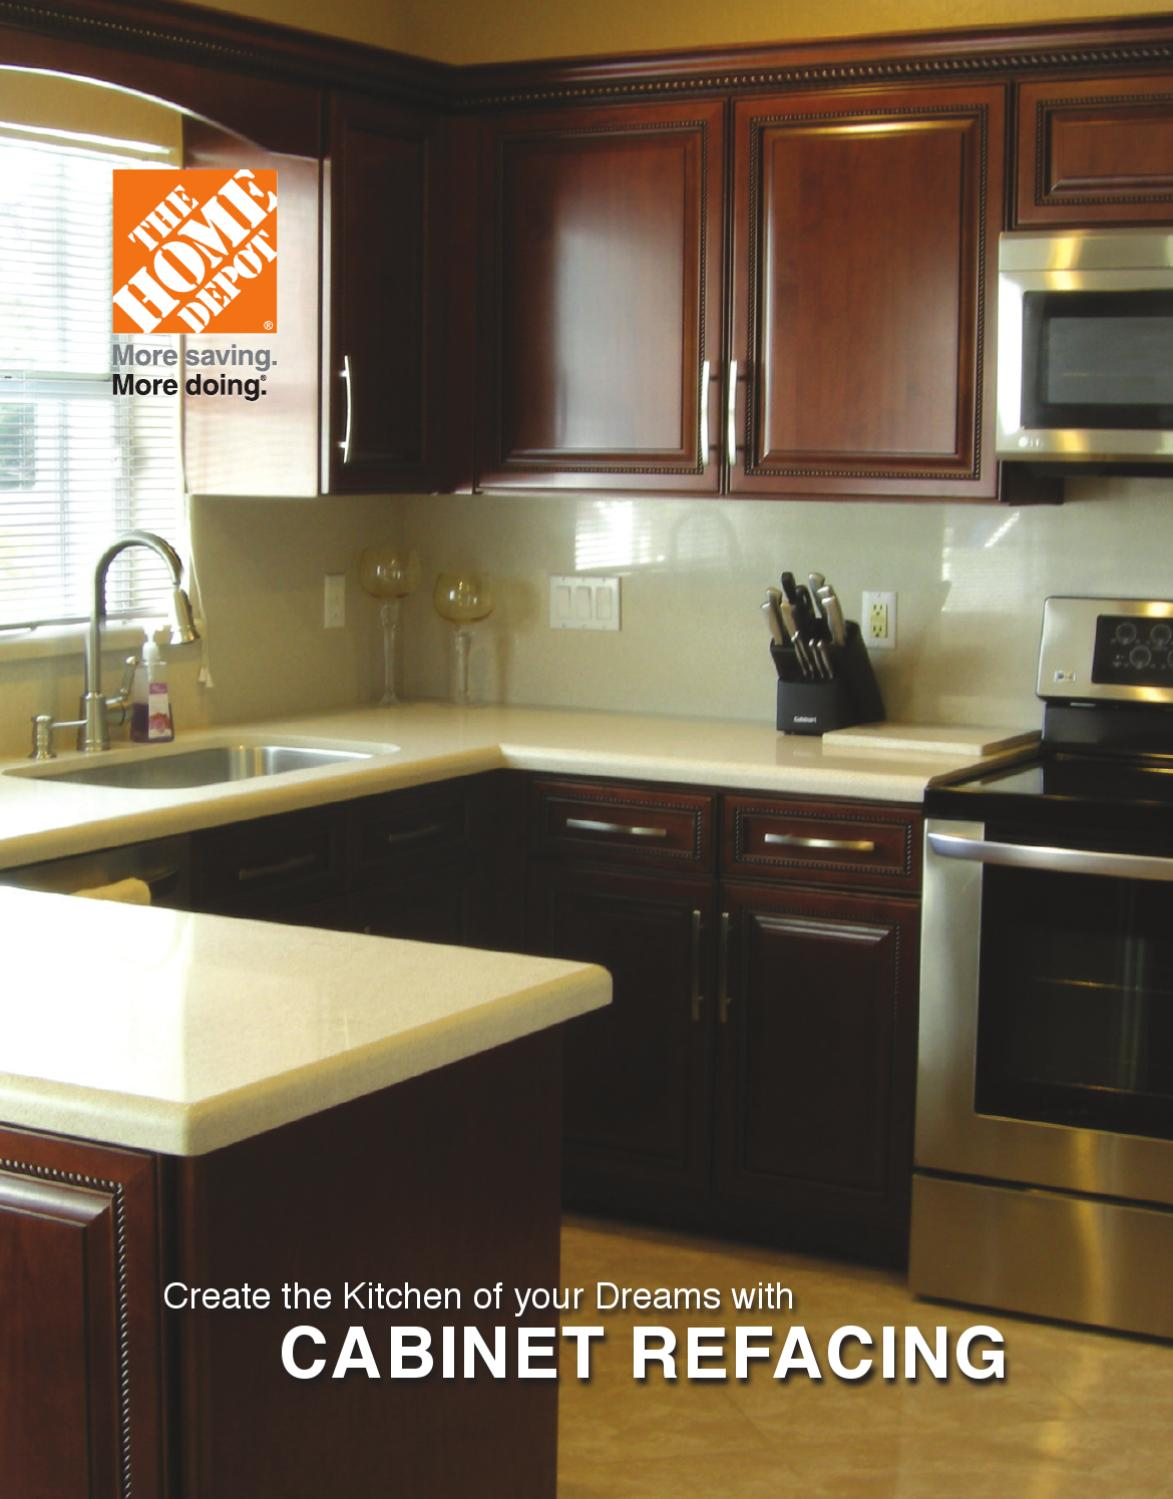 Thermofoil Kitchen Cabinets Home Depot The Home Depot Cabinet Refacing Brochure By Us